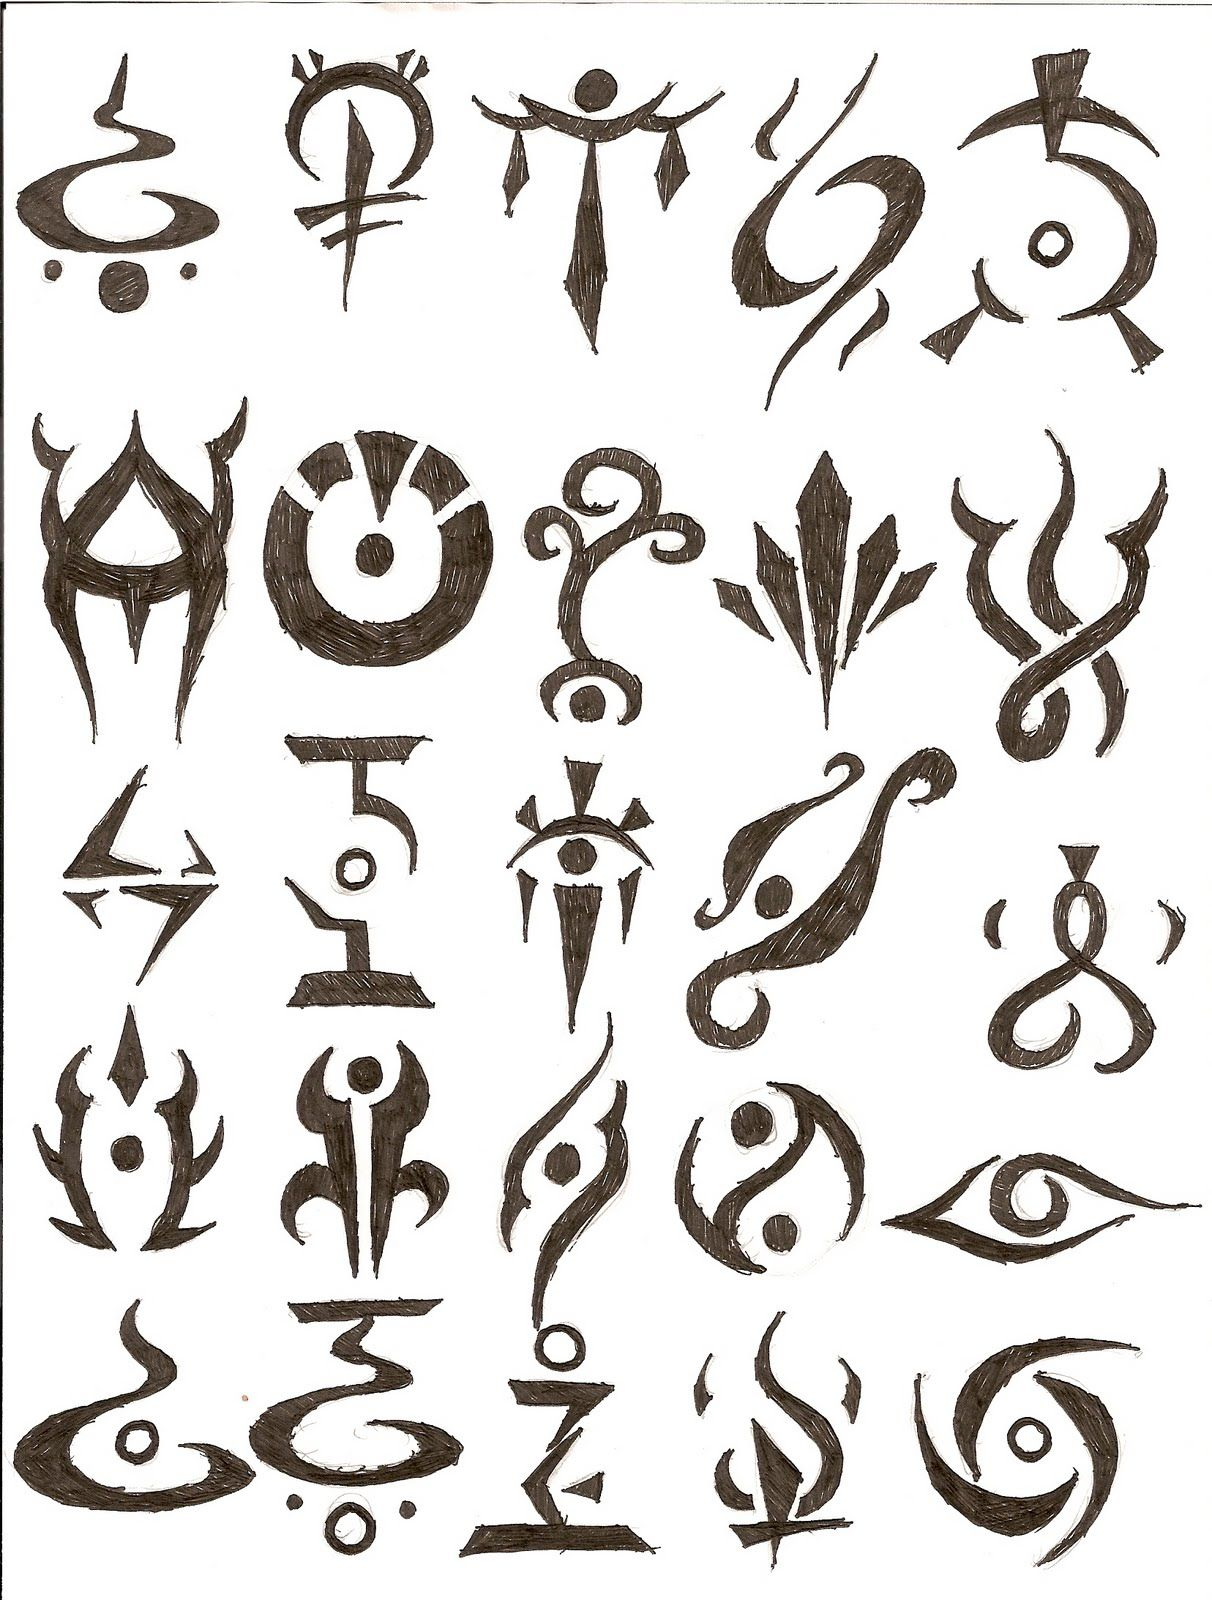 greek god symbol tattoos - Google Search | Sigil and Body ...